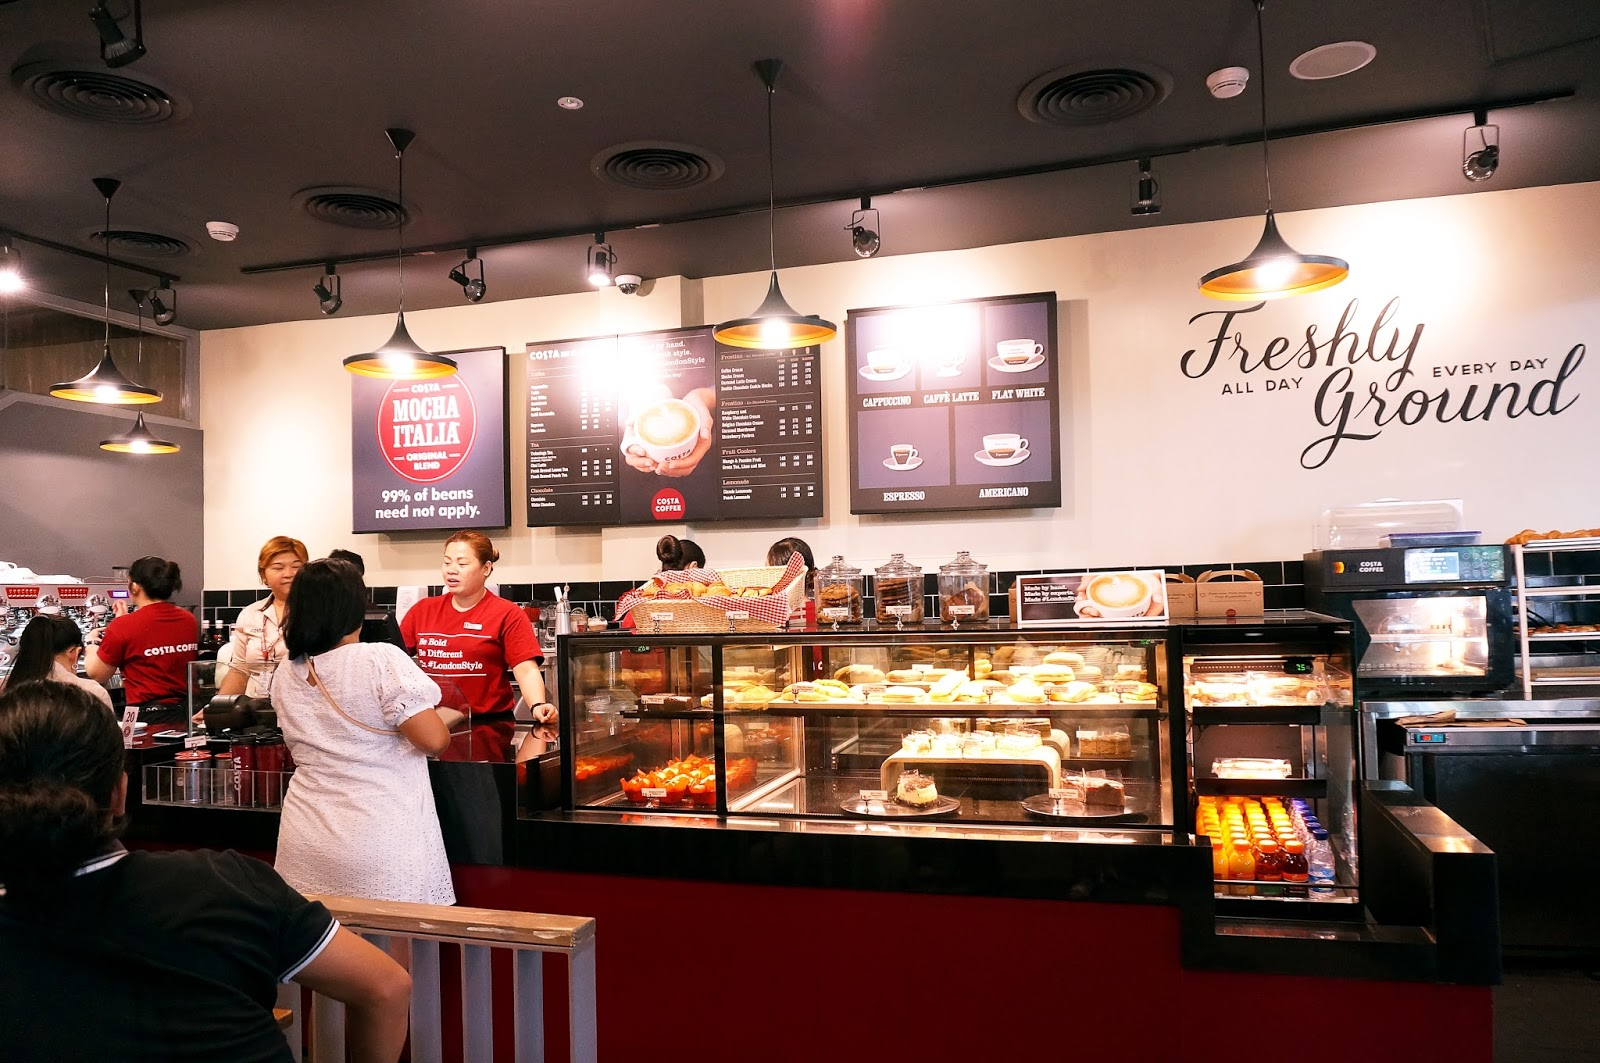 Food: Costa Coffee (cafe visit)